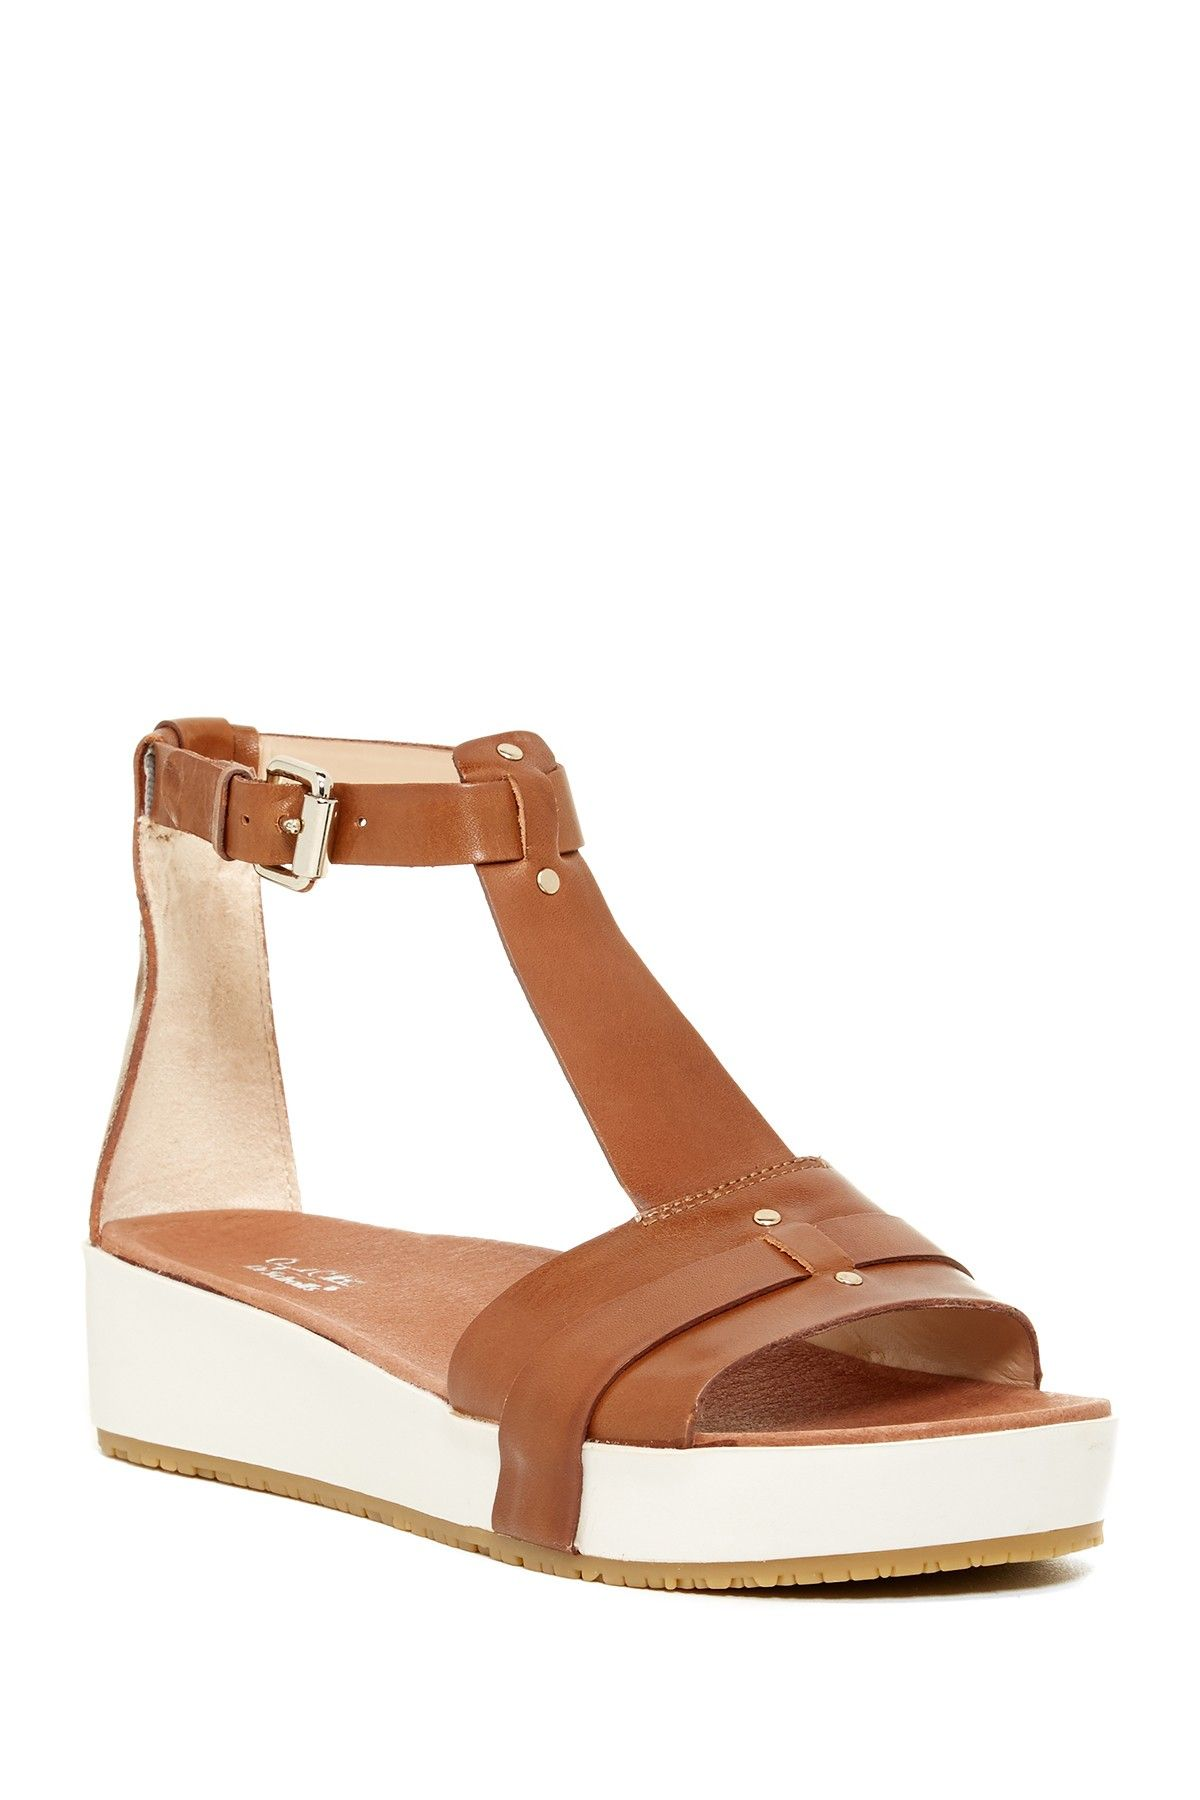 Fraser platform sandal shops products and sandals